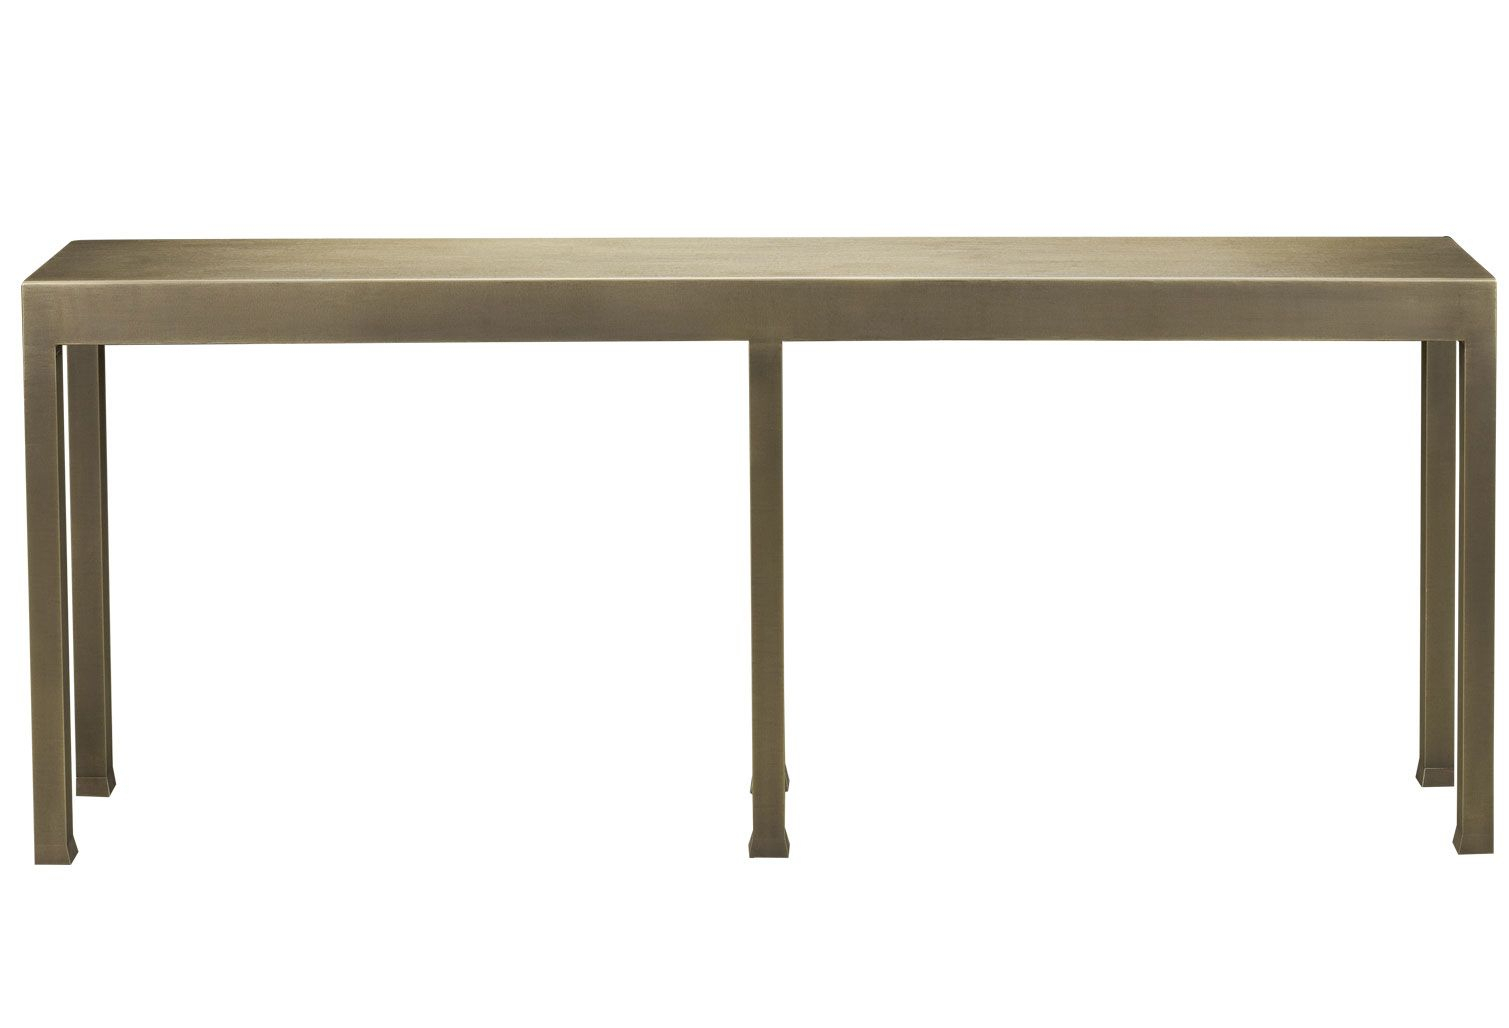 Gong Consolepromemoria - Switch Modern pertaining to Switch Console Tables (Image 9 of 30)